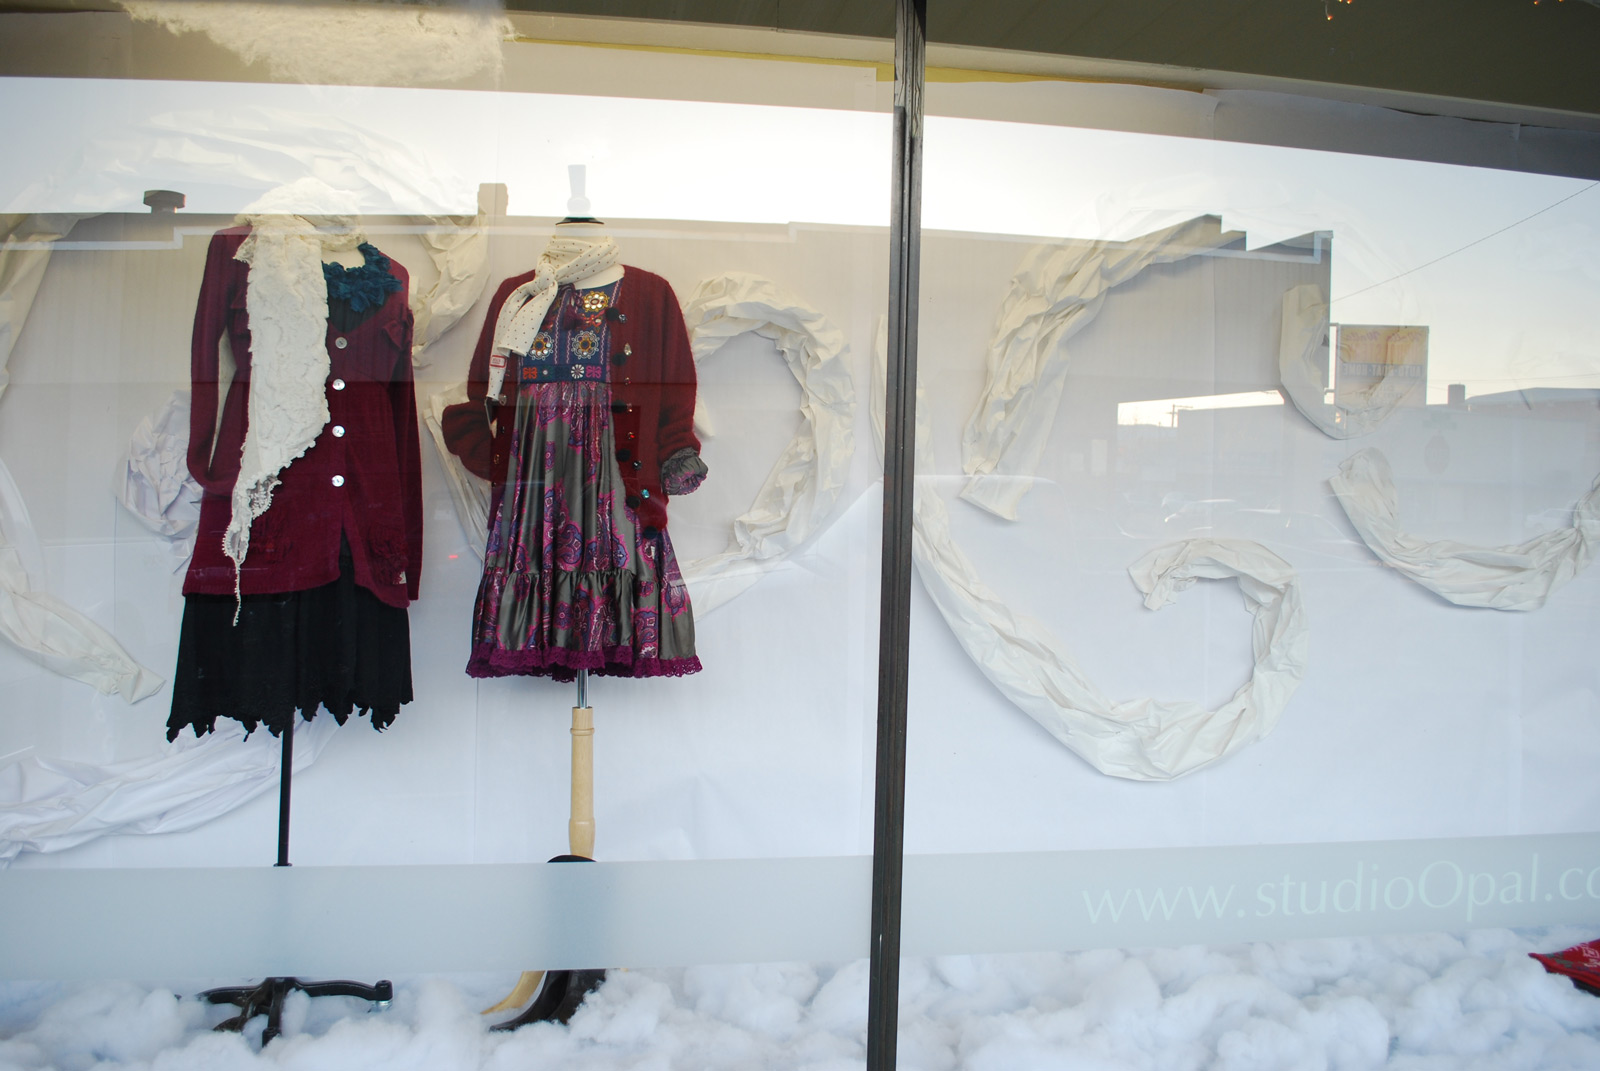 A dark red blemish and other colors, standing out in the lightened window display prepared for winter with the white background and the snow on the ground.